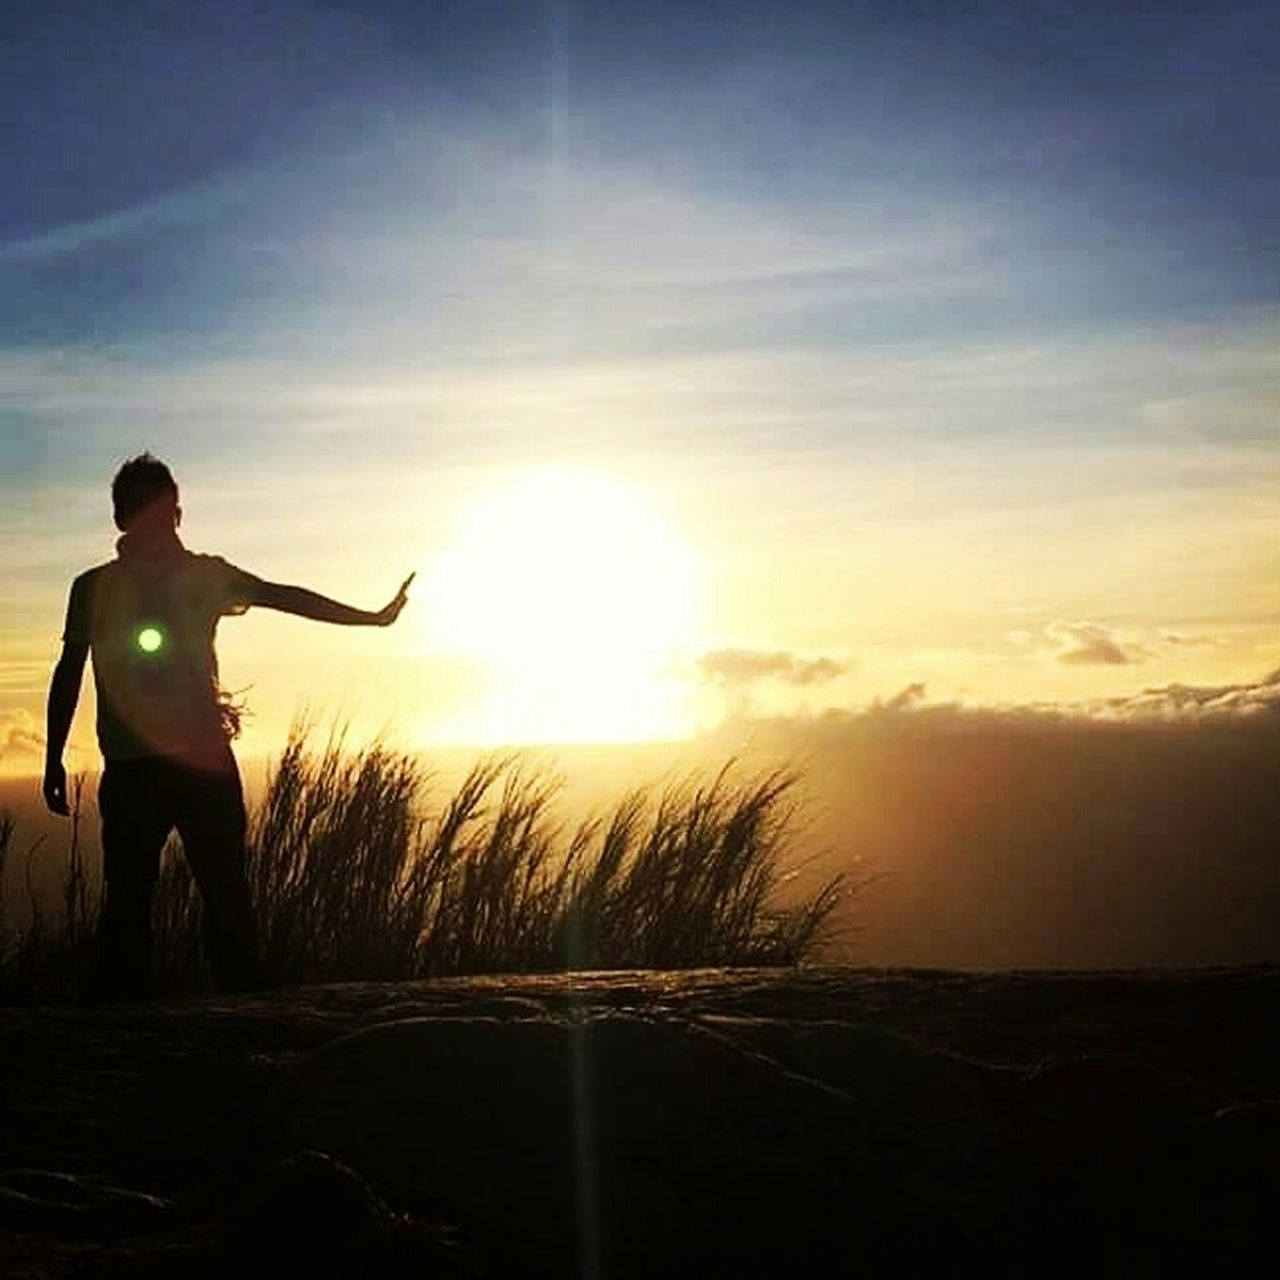 Nature Full Length Weapon Outdoors Summer One Person Adult Silhouette Sky Sunset TravelPhilippines TrekkingDay Nature Standing Vacations Trekking Adventure Hiking